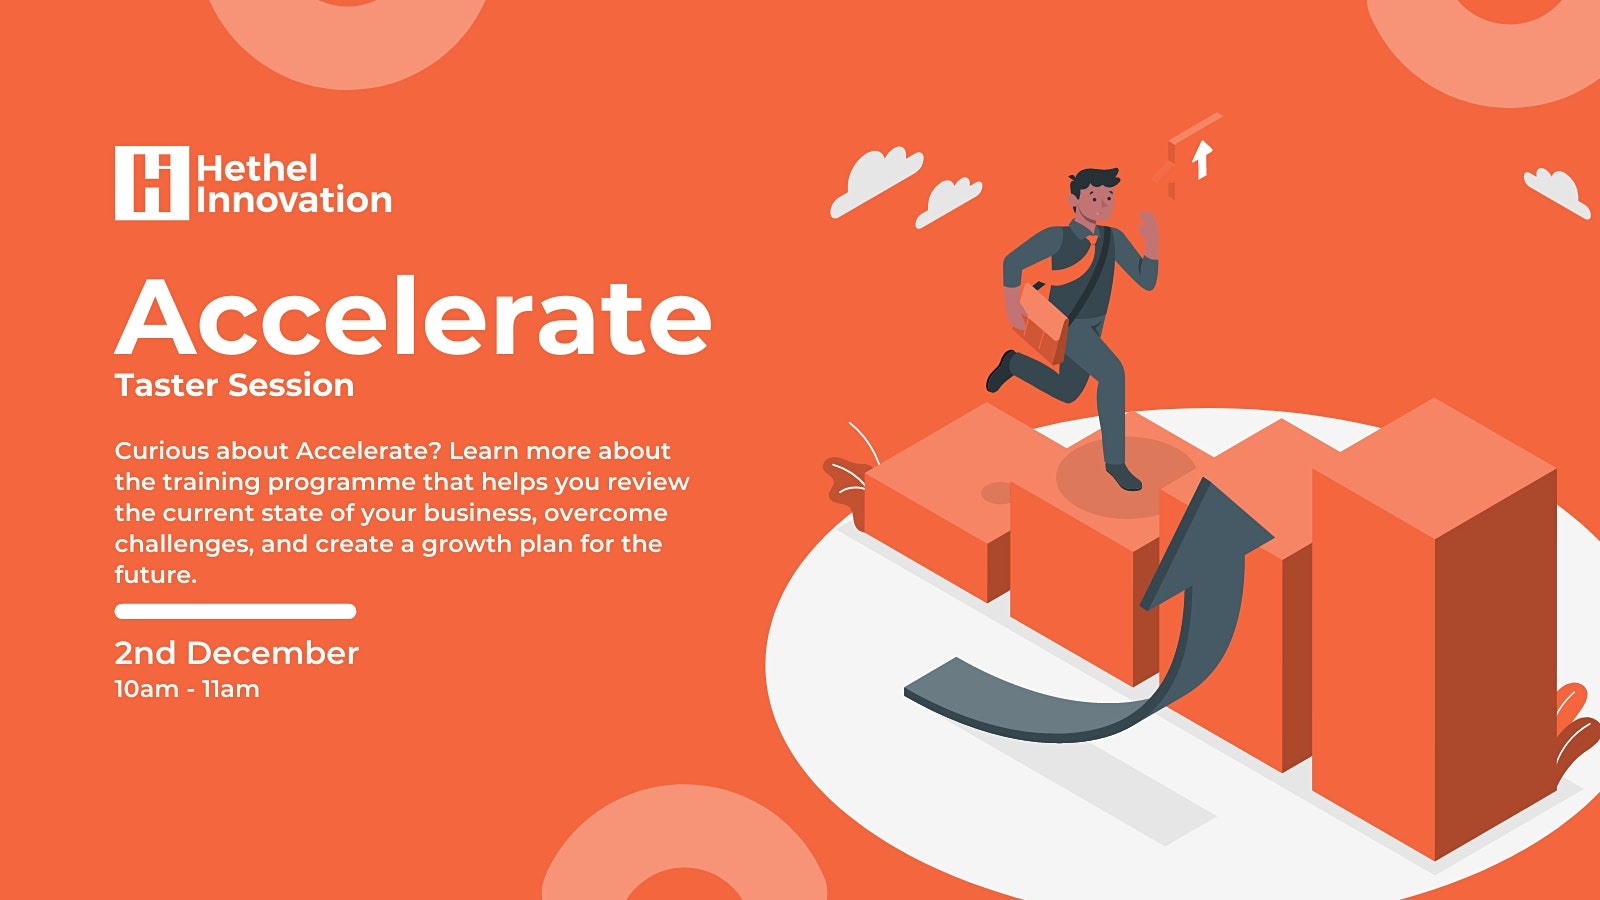 Accelerate: Taster Session